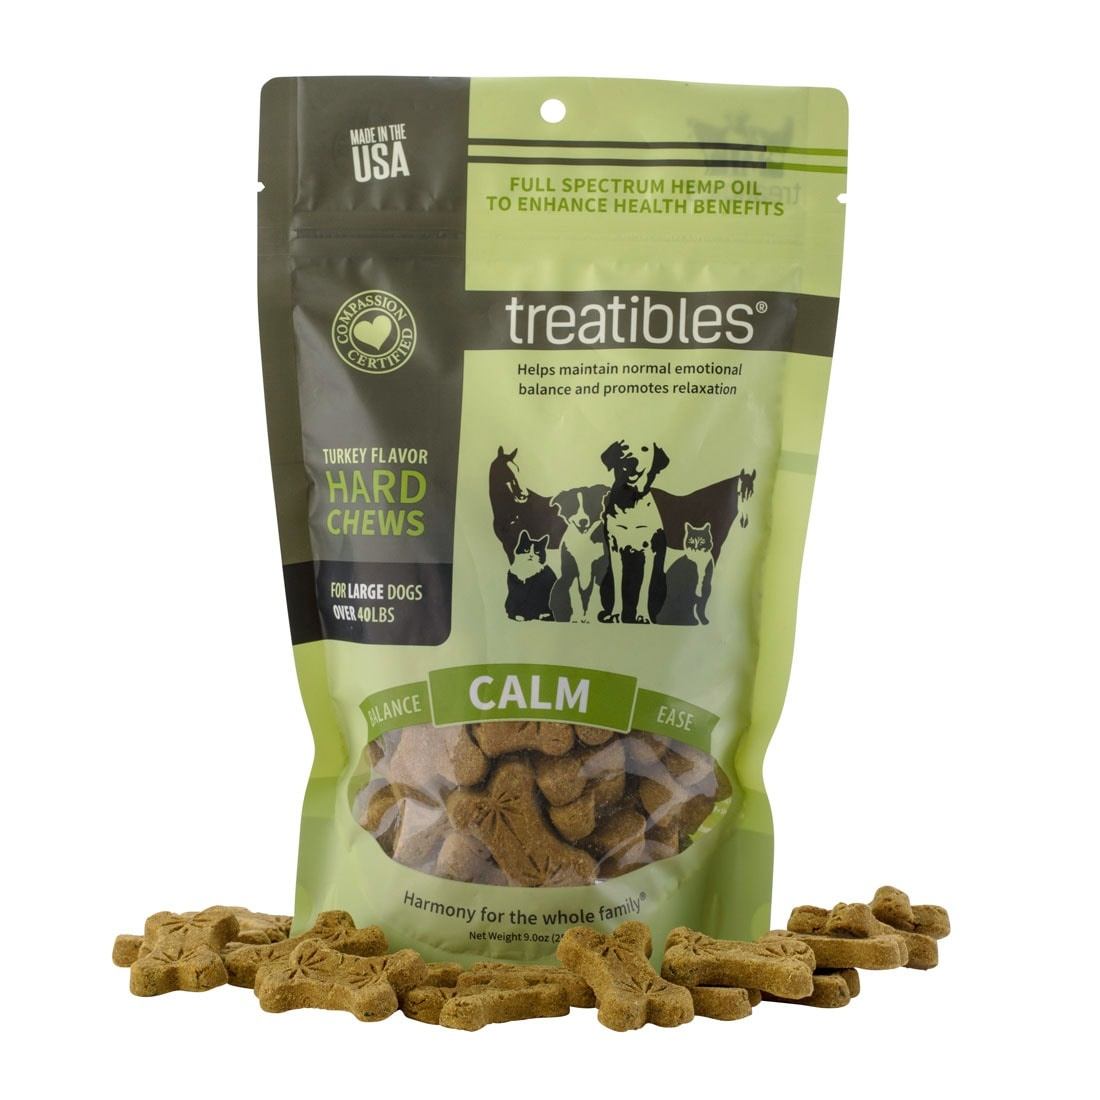 Treatibles Treatibles Hard Chews -  6oz Sml/Med Turkey